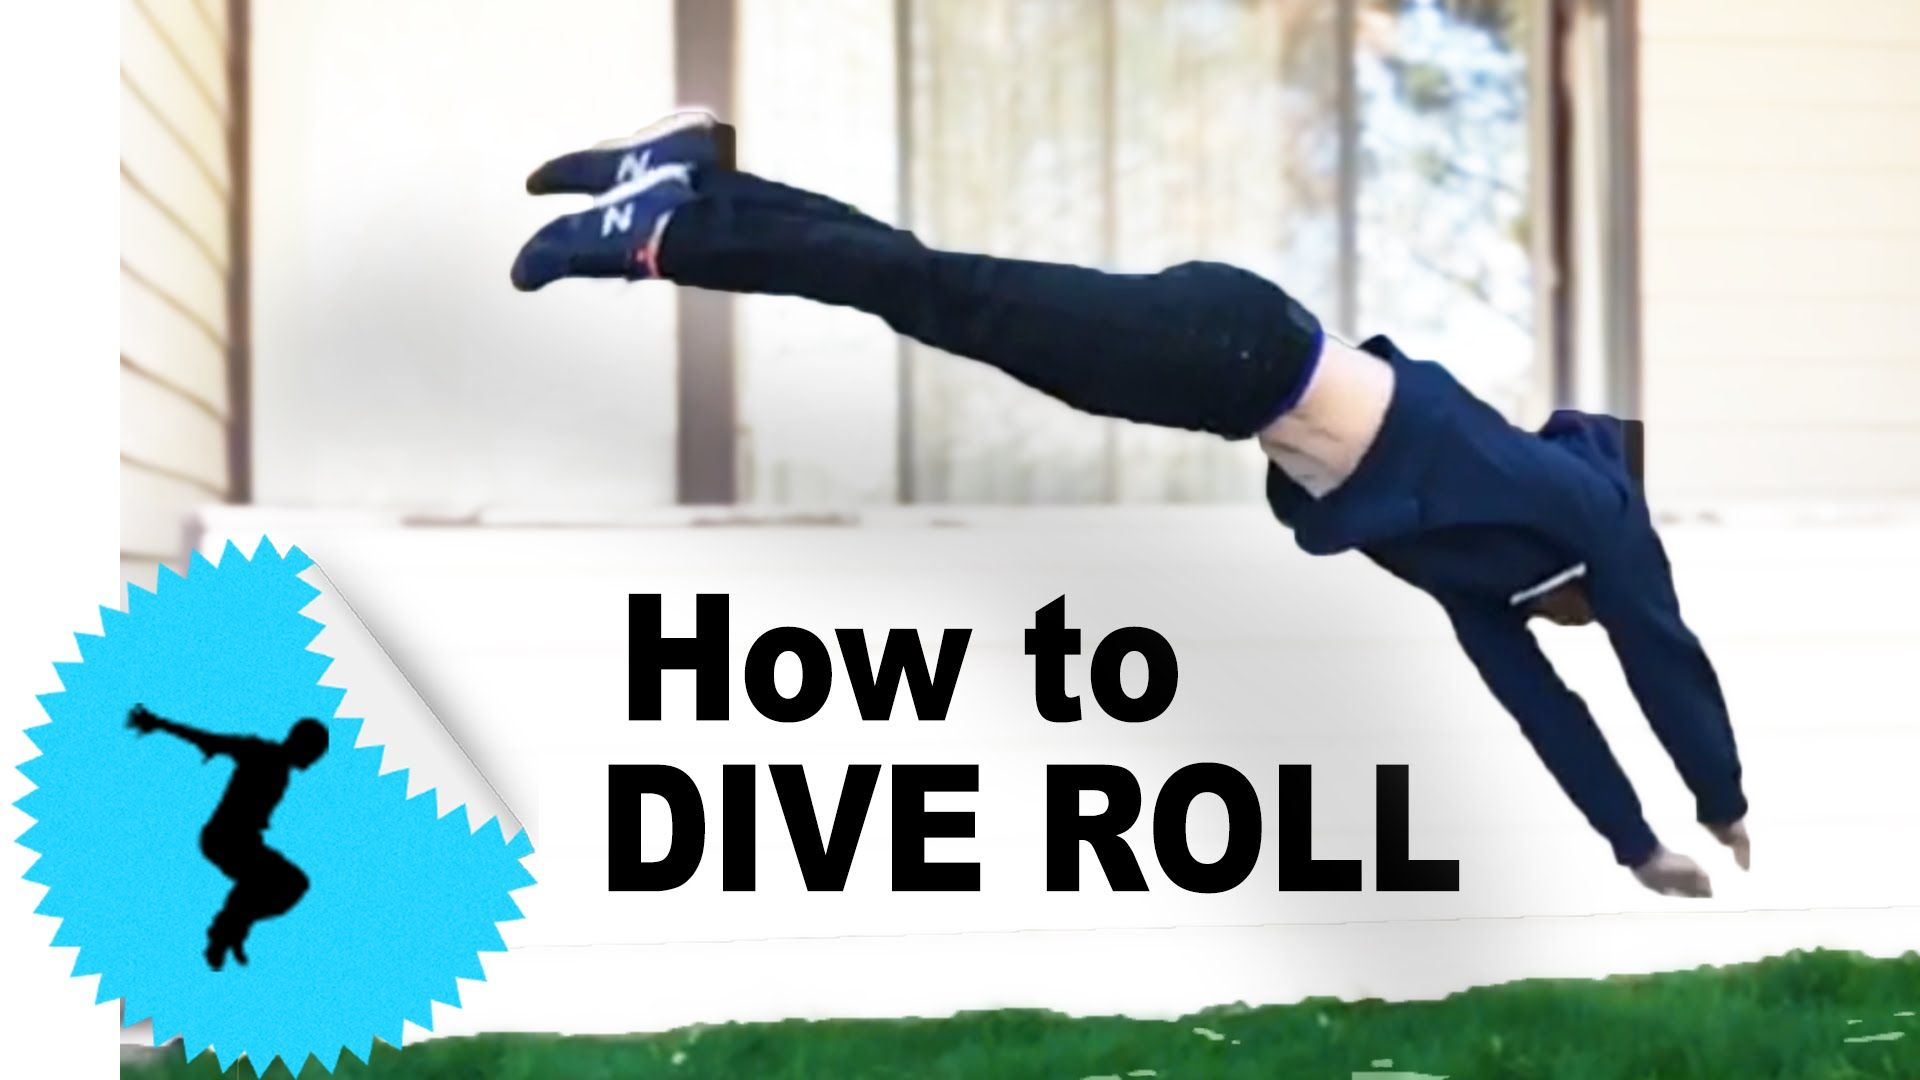 How to Dive Roll - Parkour Tutorial @Camp Woodward - Tapp Brothers   . PARKoUR / FReeRuNNiNG ...